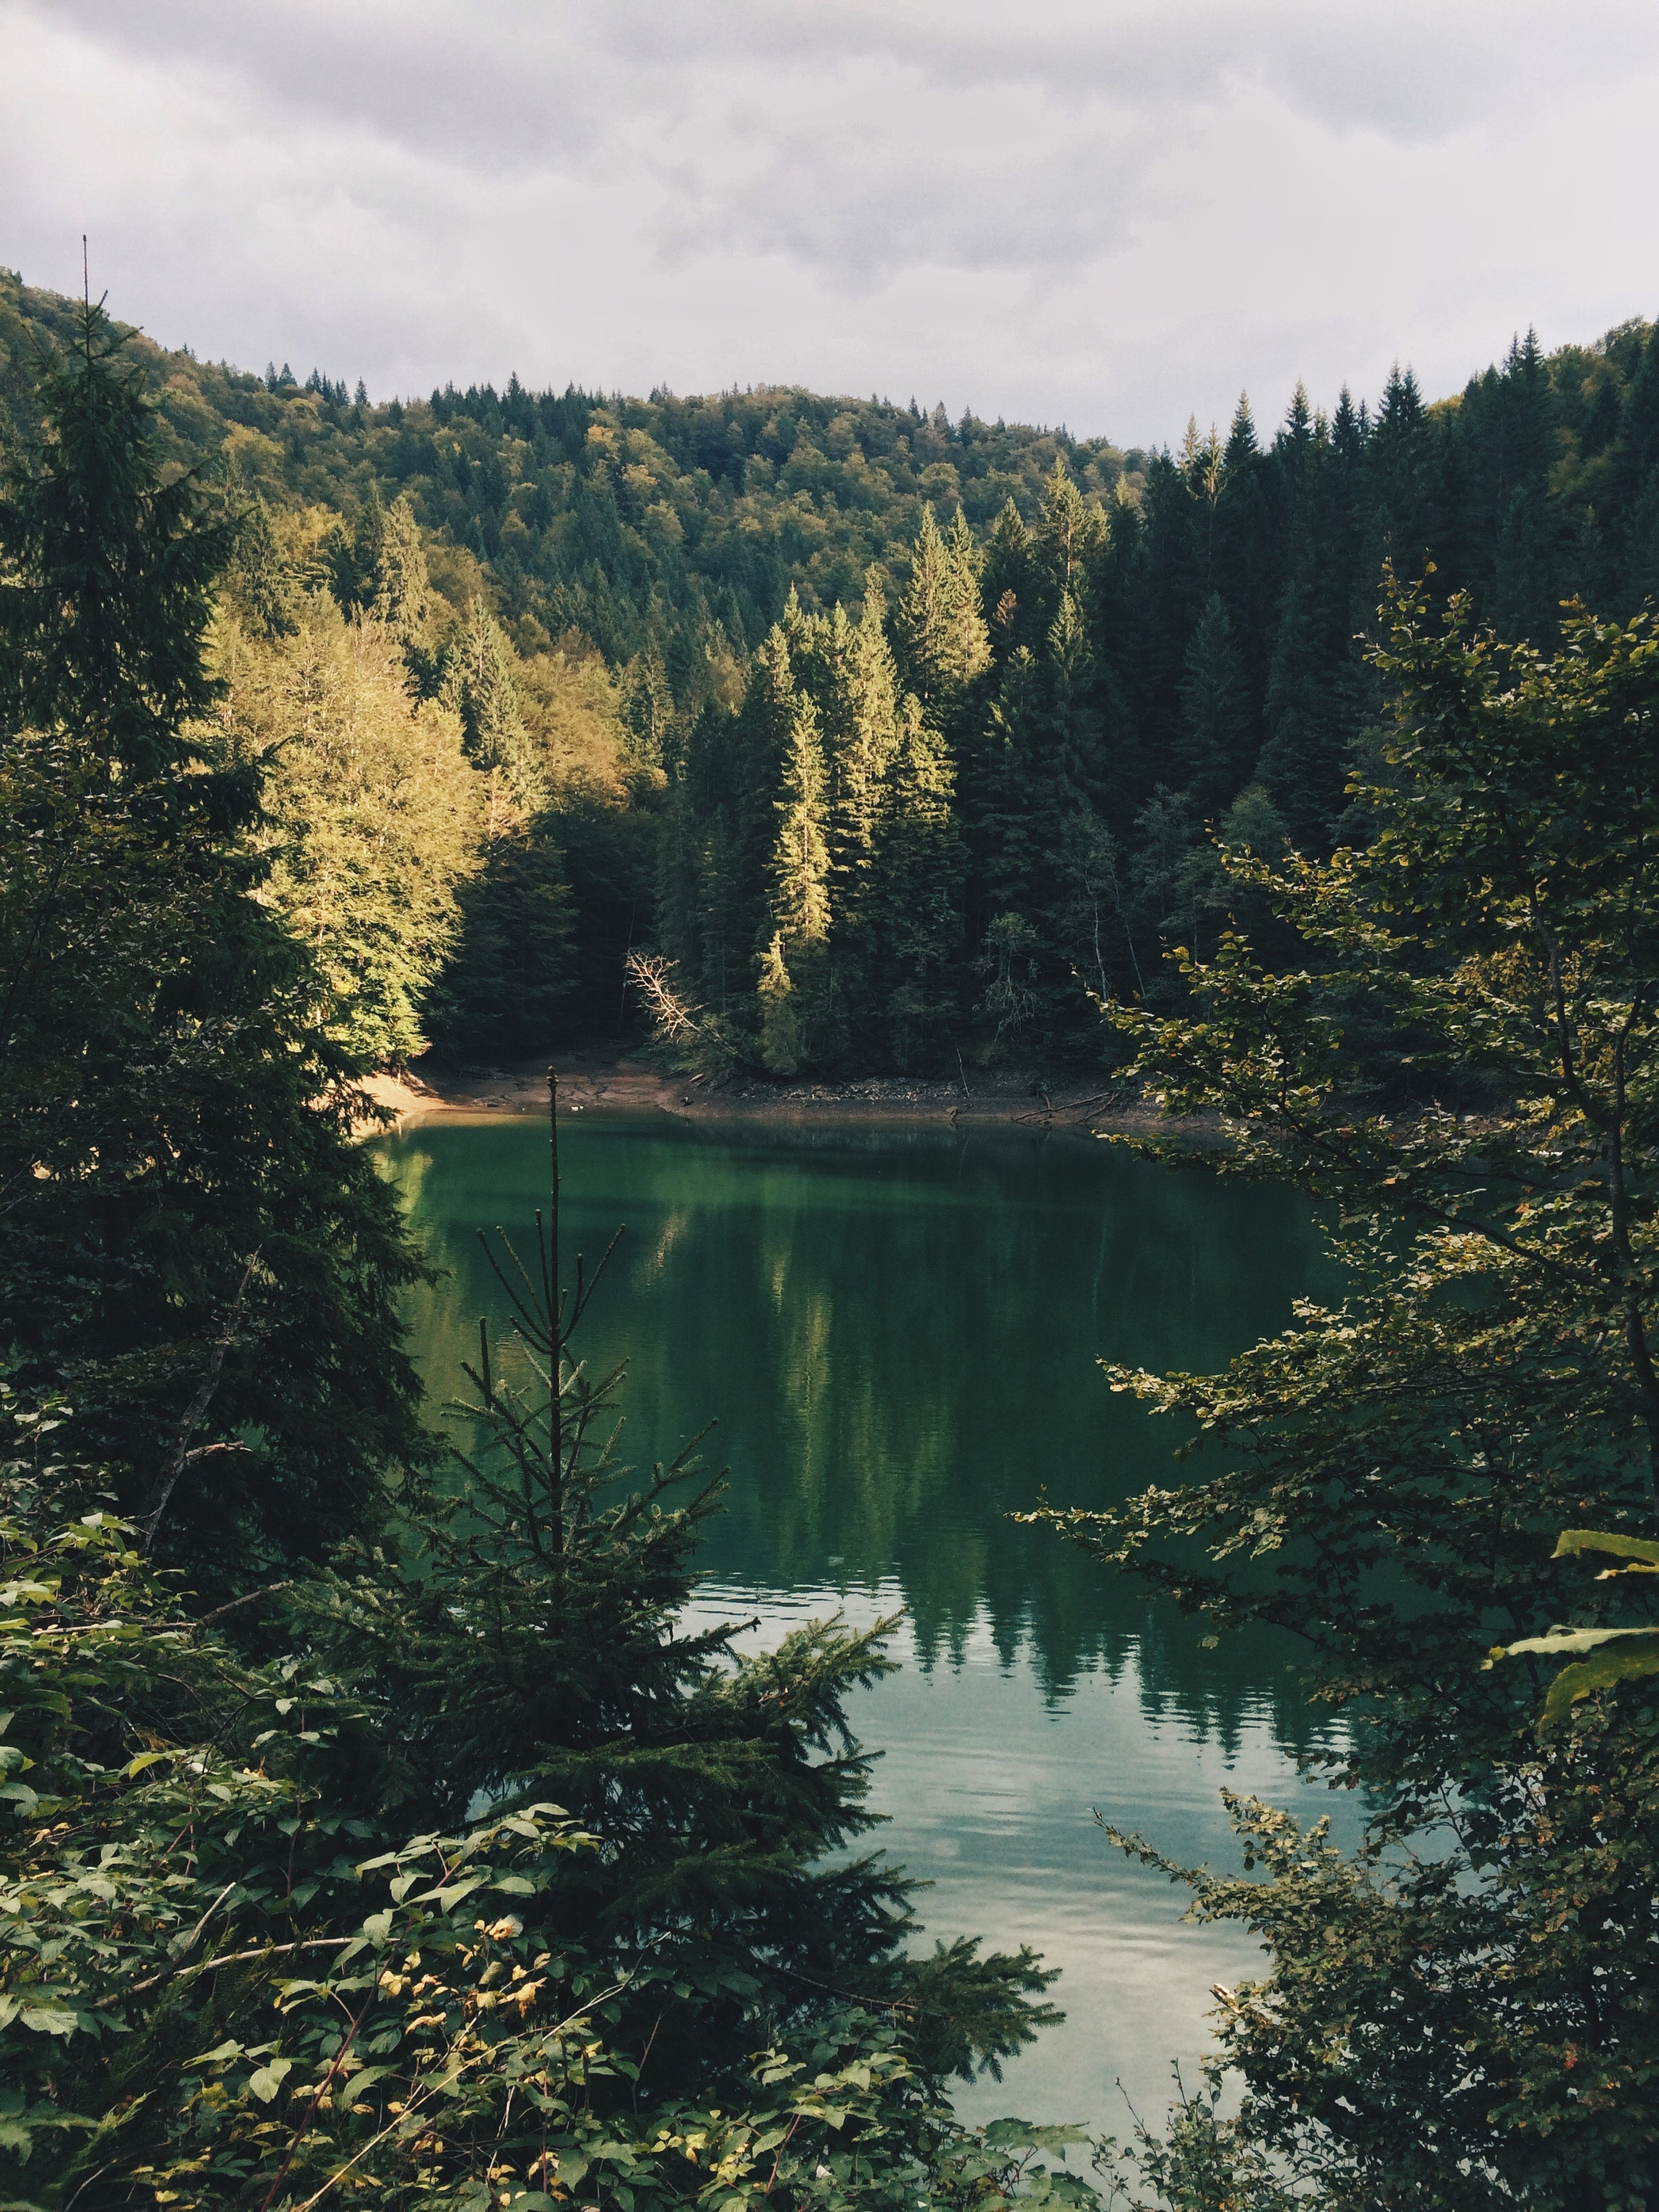 body of water surrounded by trees during daytime